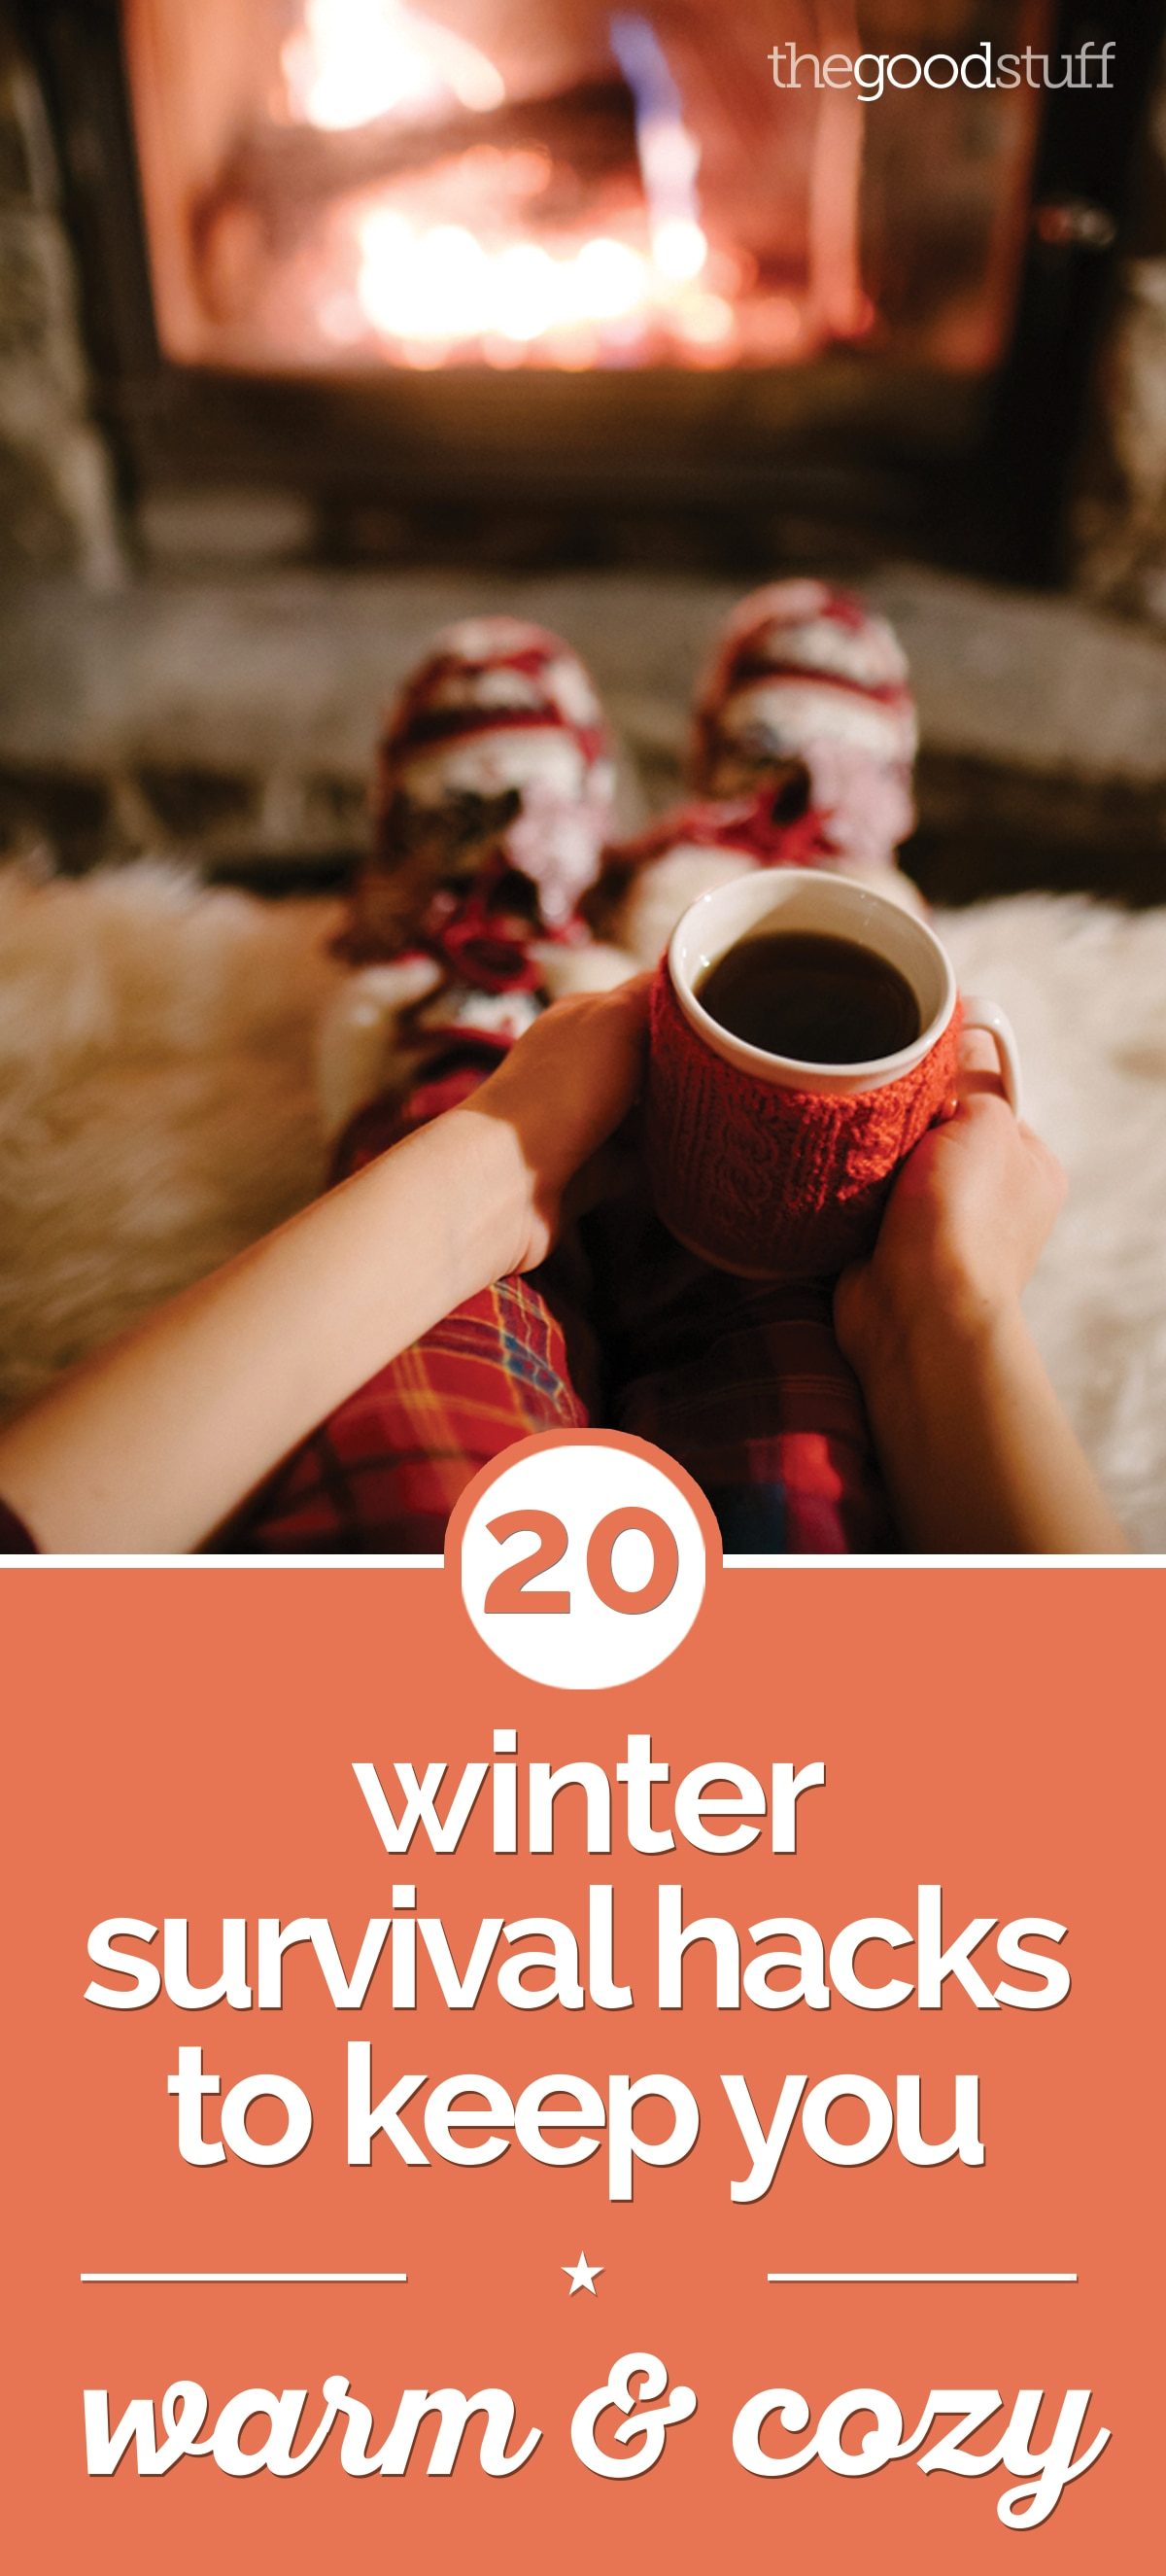 20 Winter Survival Hacks to Keep You Warm & Cozy | thegoodstuff